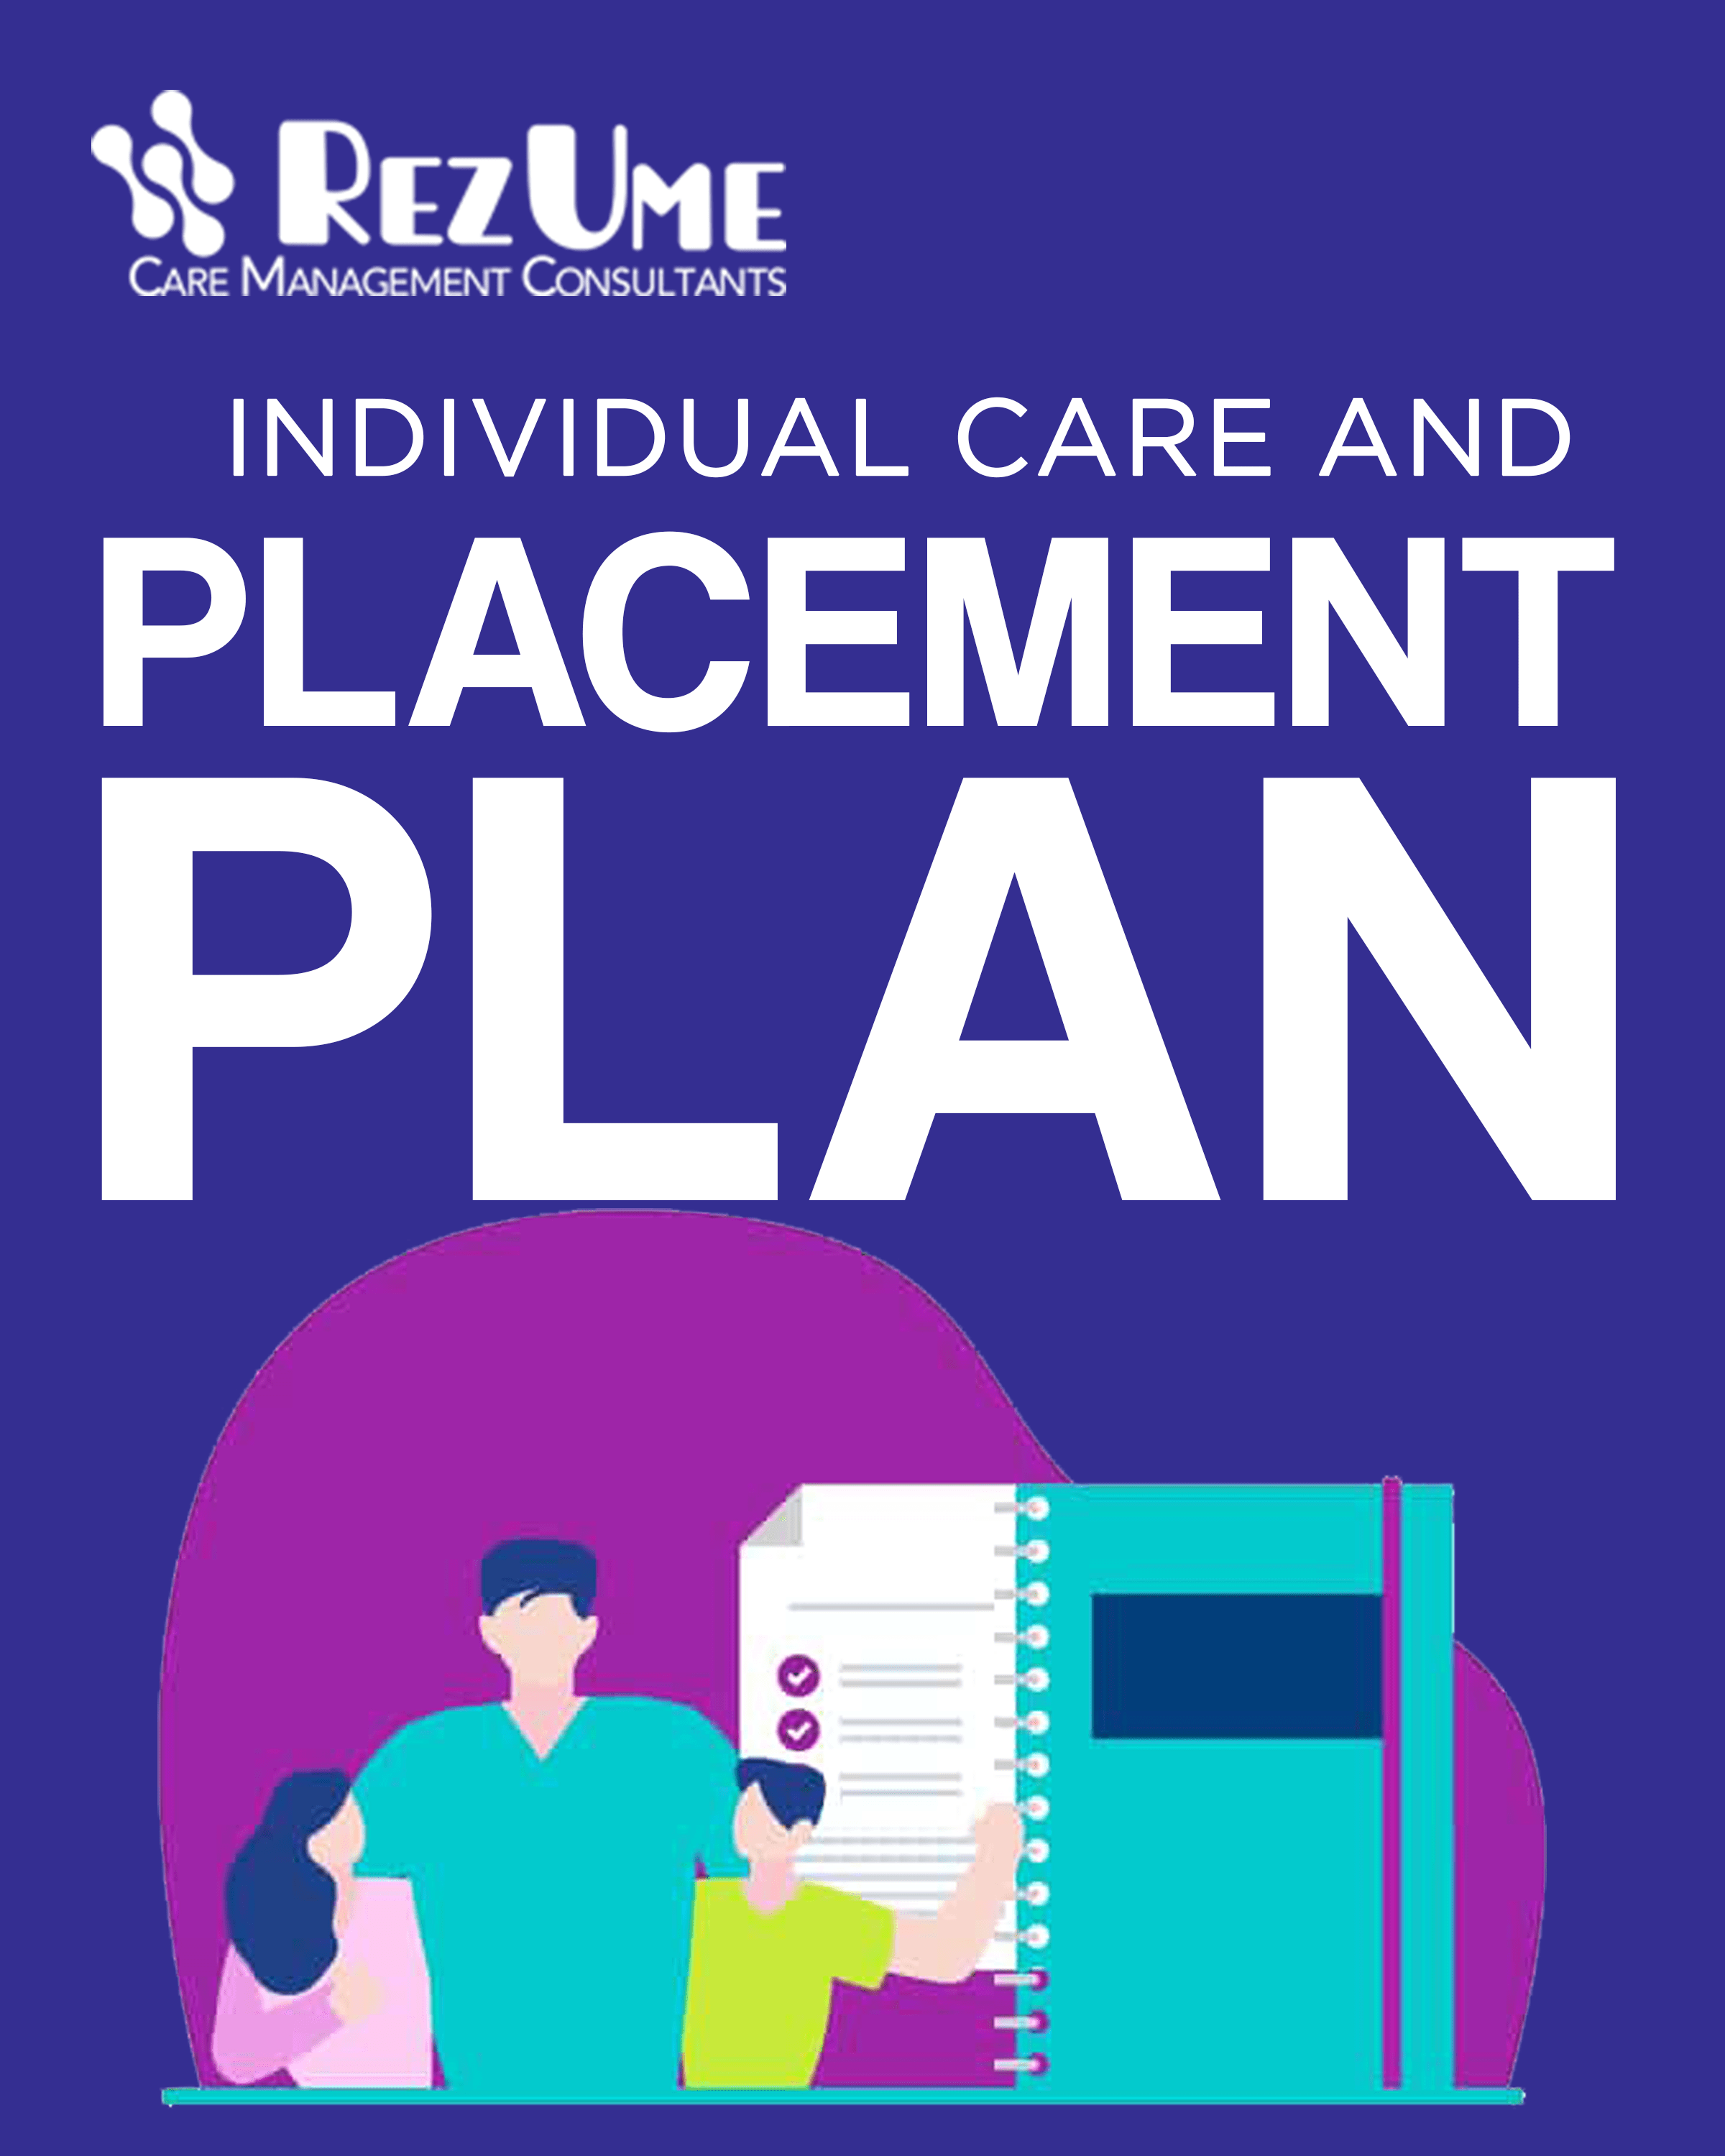 Children's individual care and placement plan